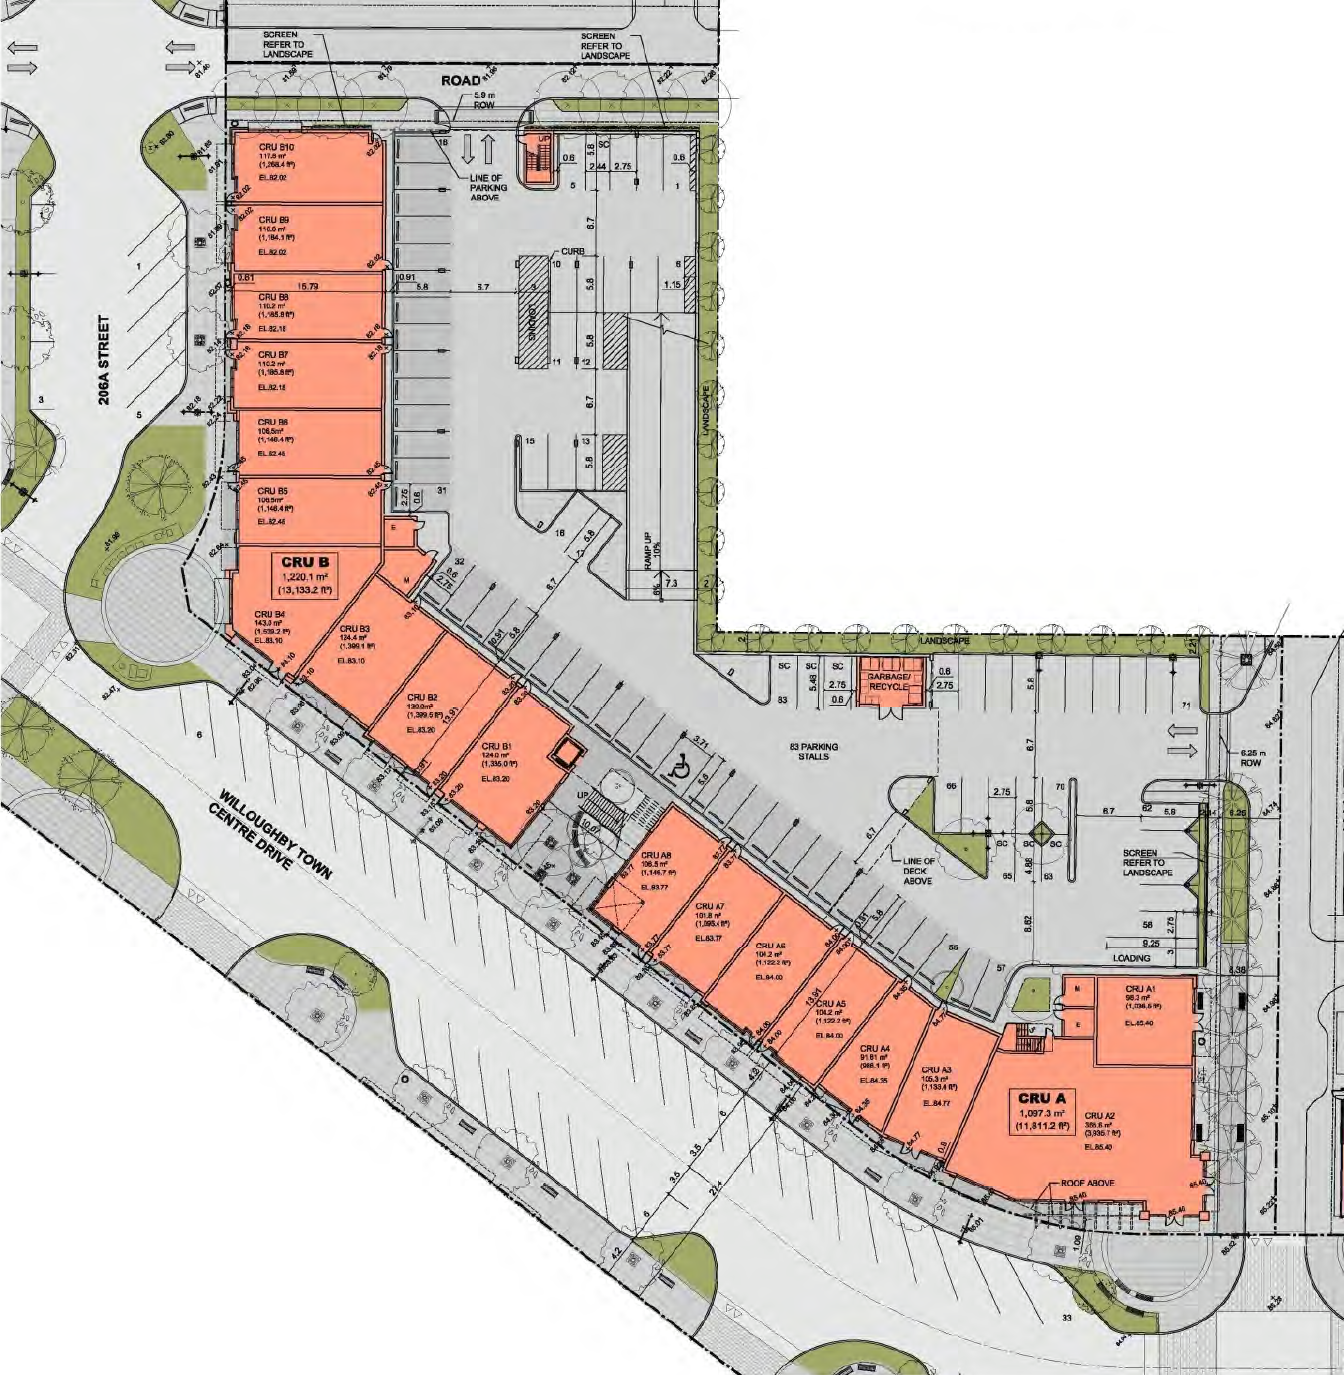 Site plan of proposed two storey commercial building in willoughby town centre select image to enlarge